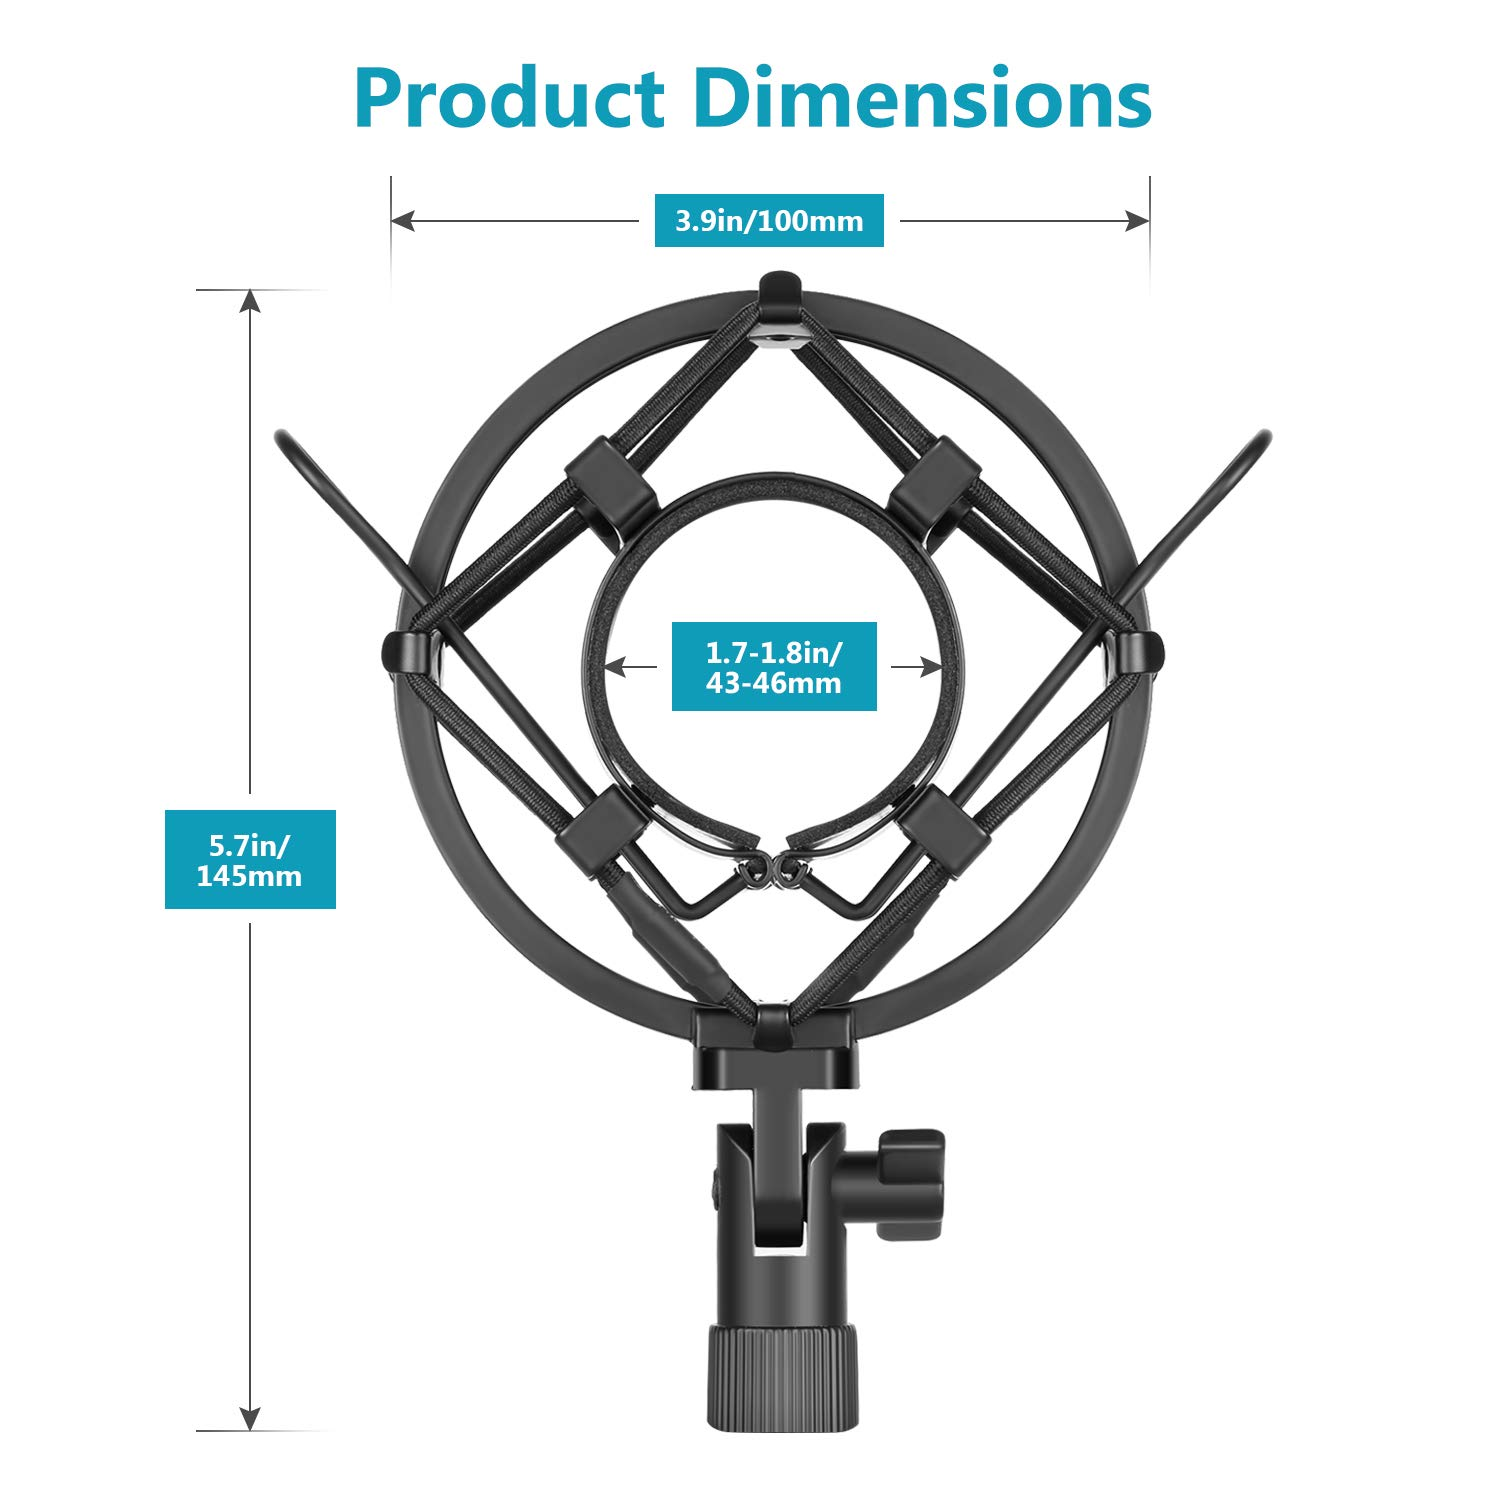 Neewer Universal Microphone Shock Mount Holder Anti Vibration Suspension  for Condenser Microphone, Idea for Radio Broadcasting Studio Voice-over  Sound